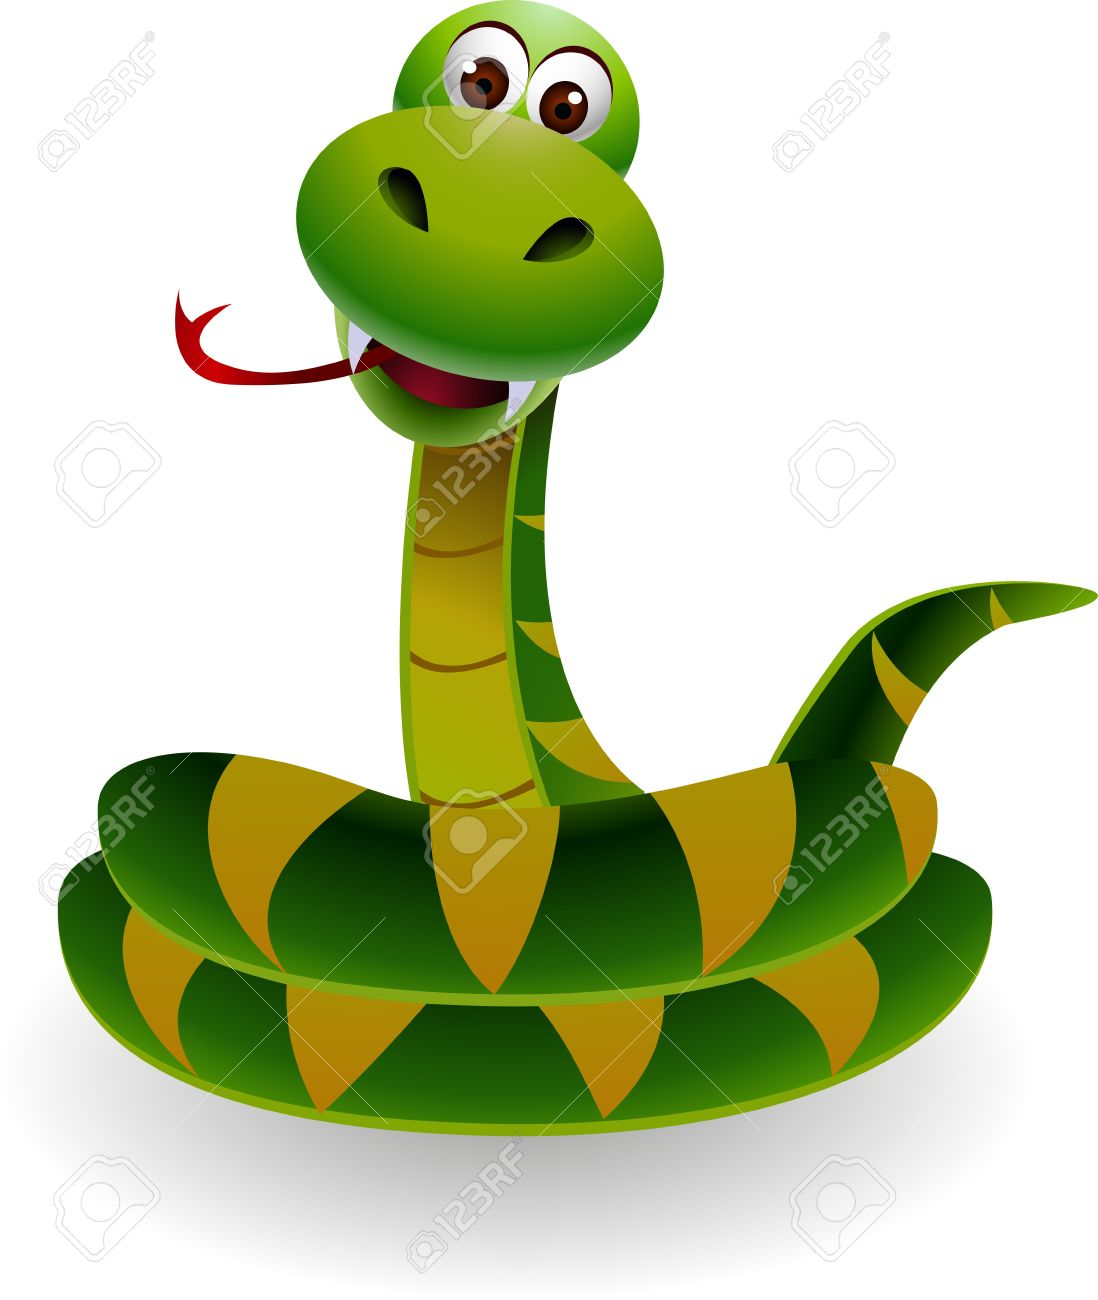 Rattlesnake clipart #4, Download drawings